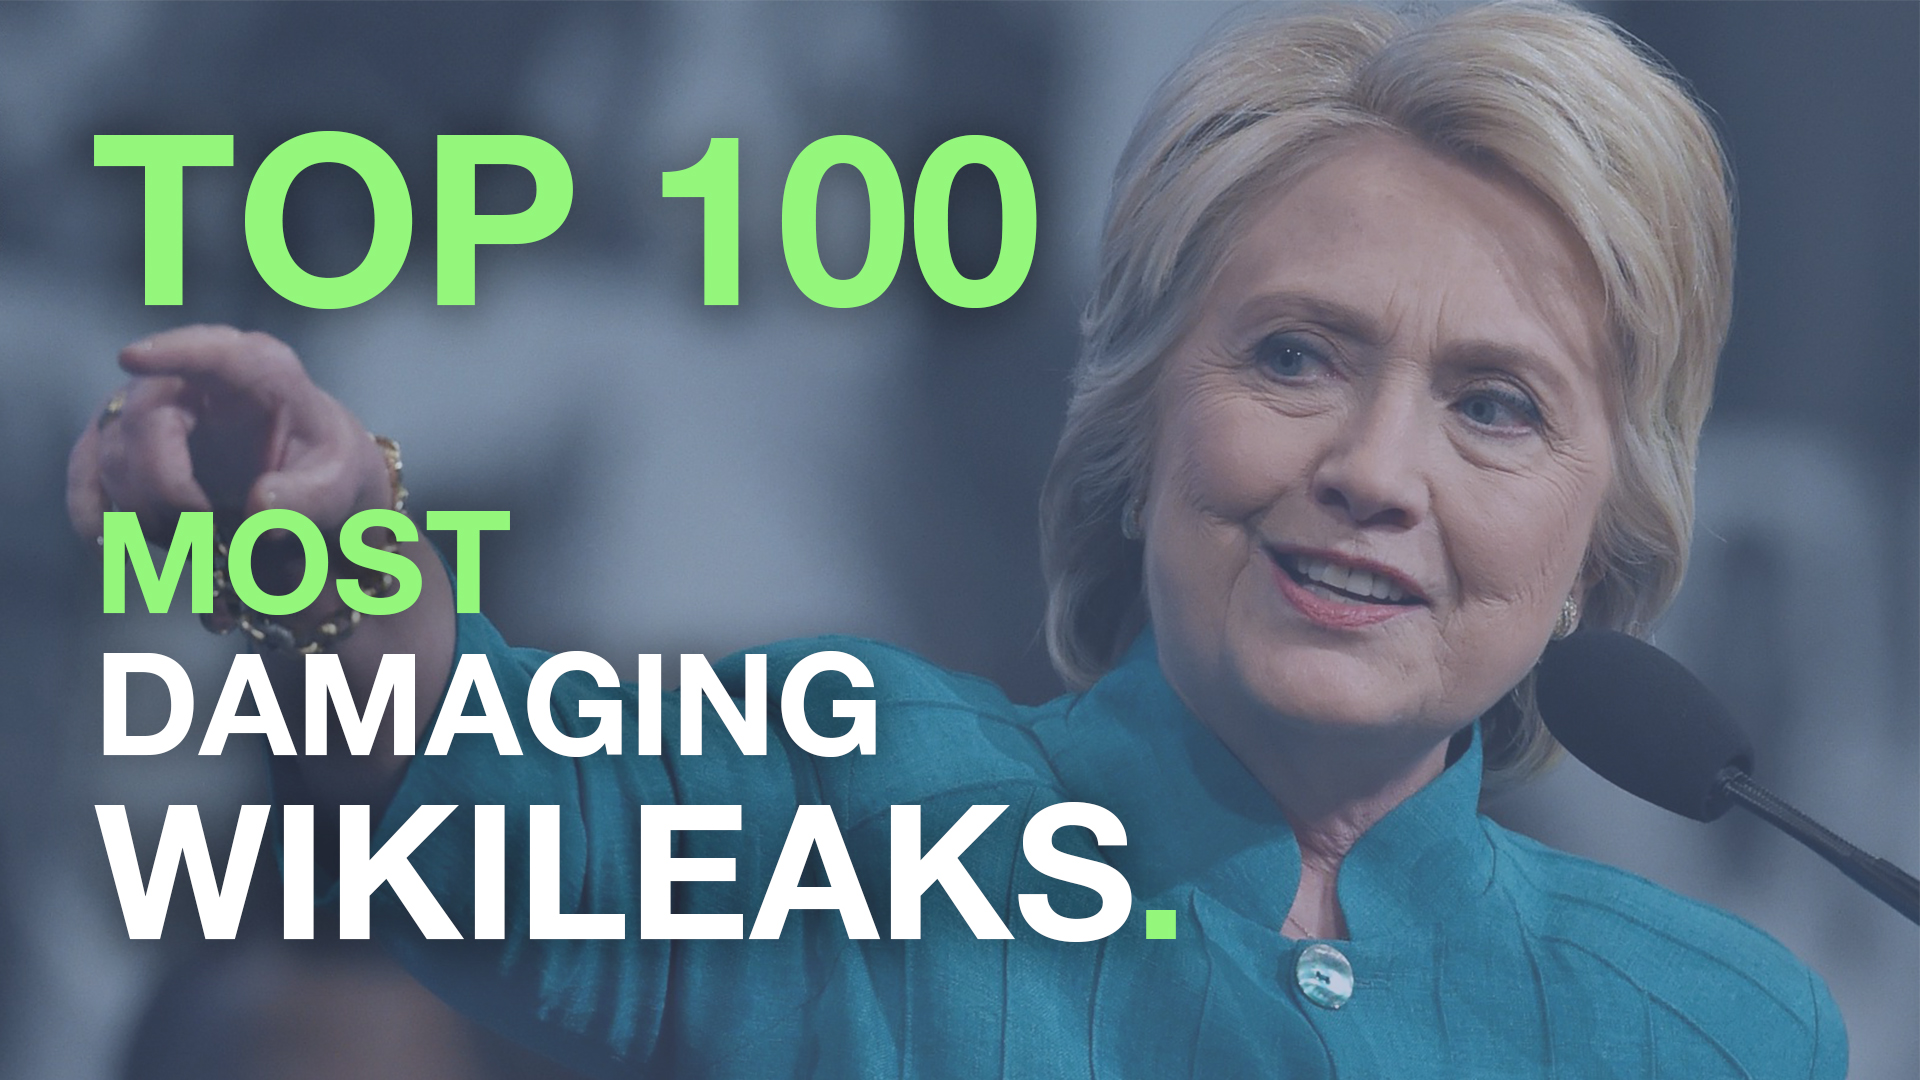 the top most damaging wikileaks